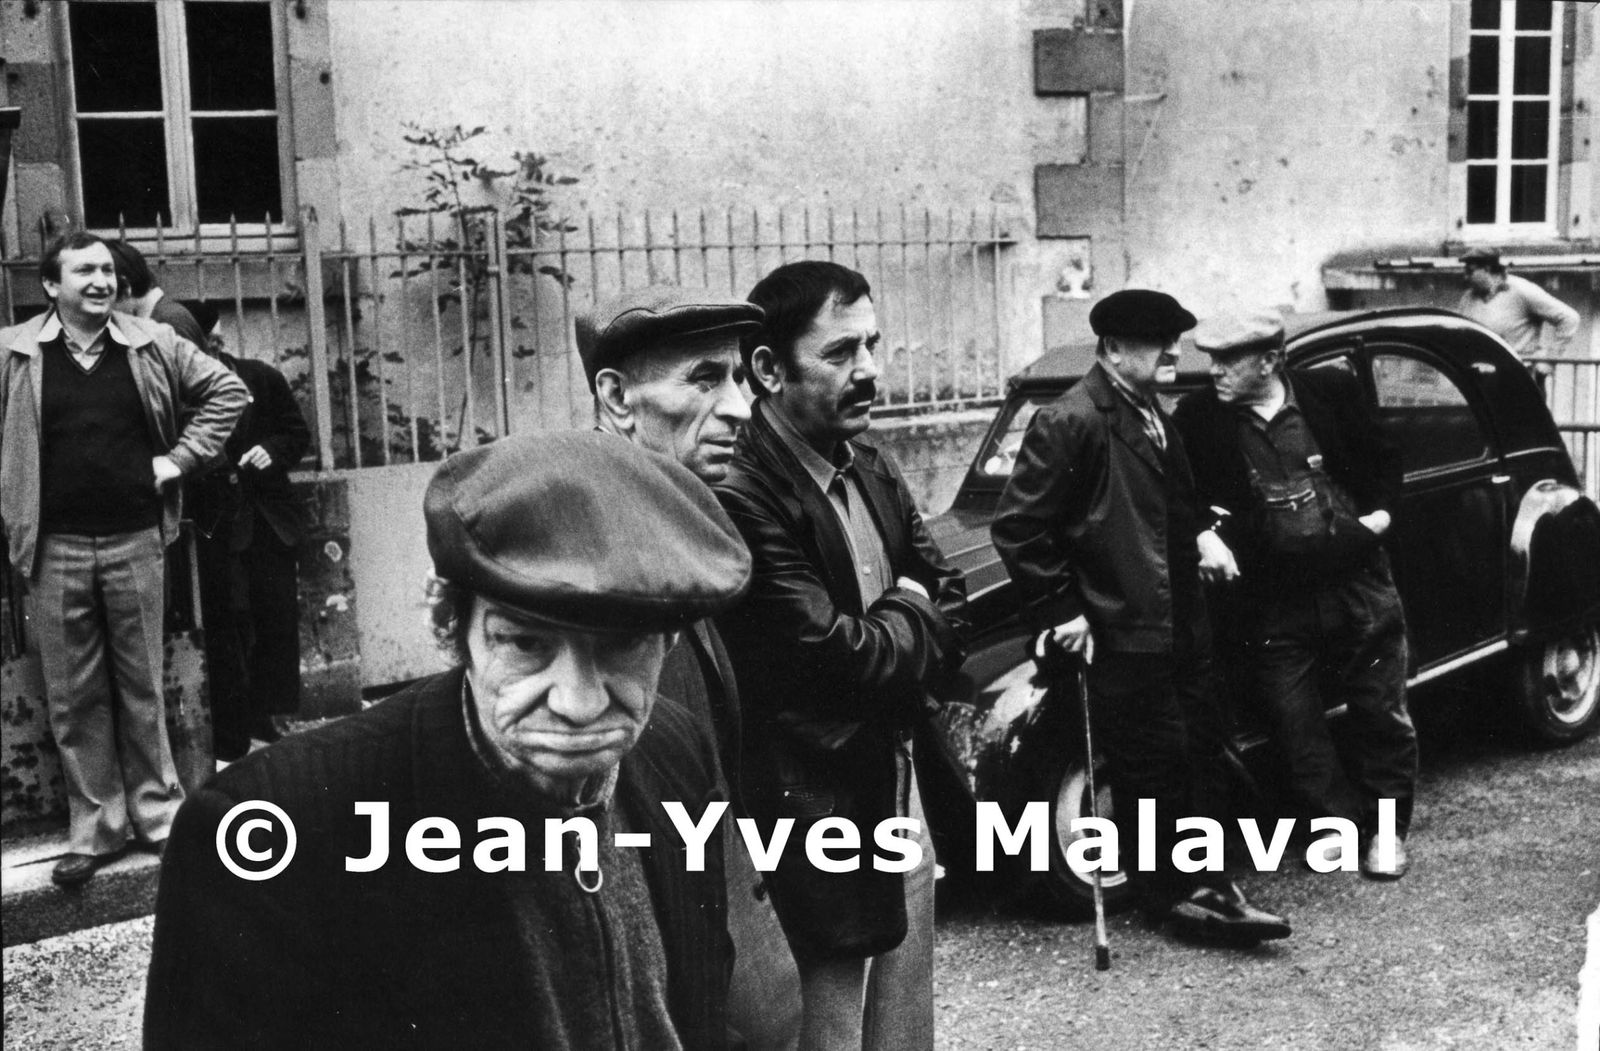 jean-yves malaval photo